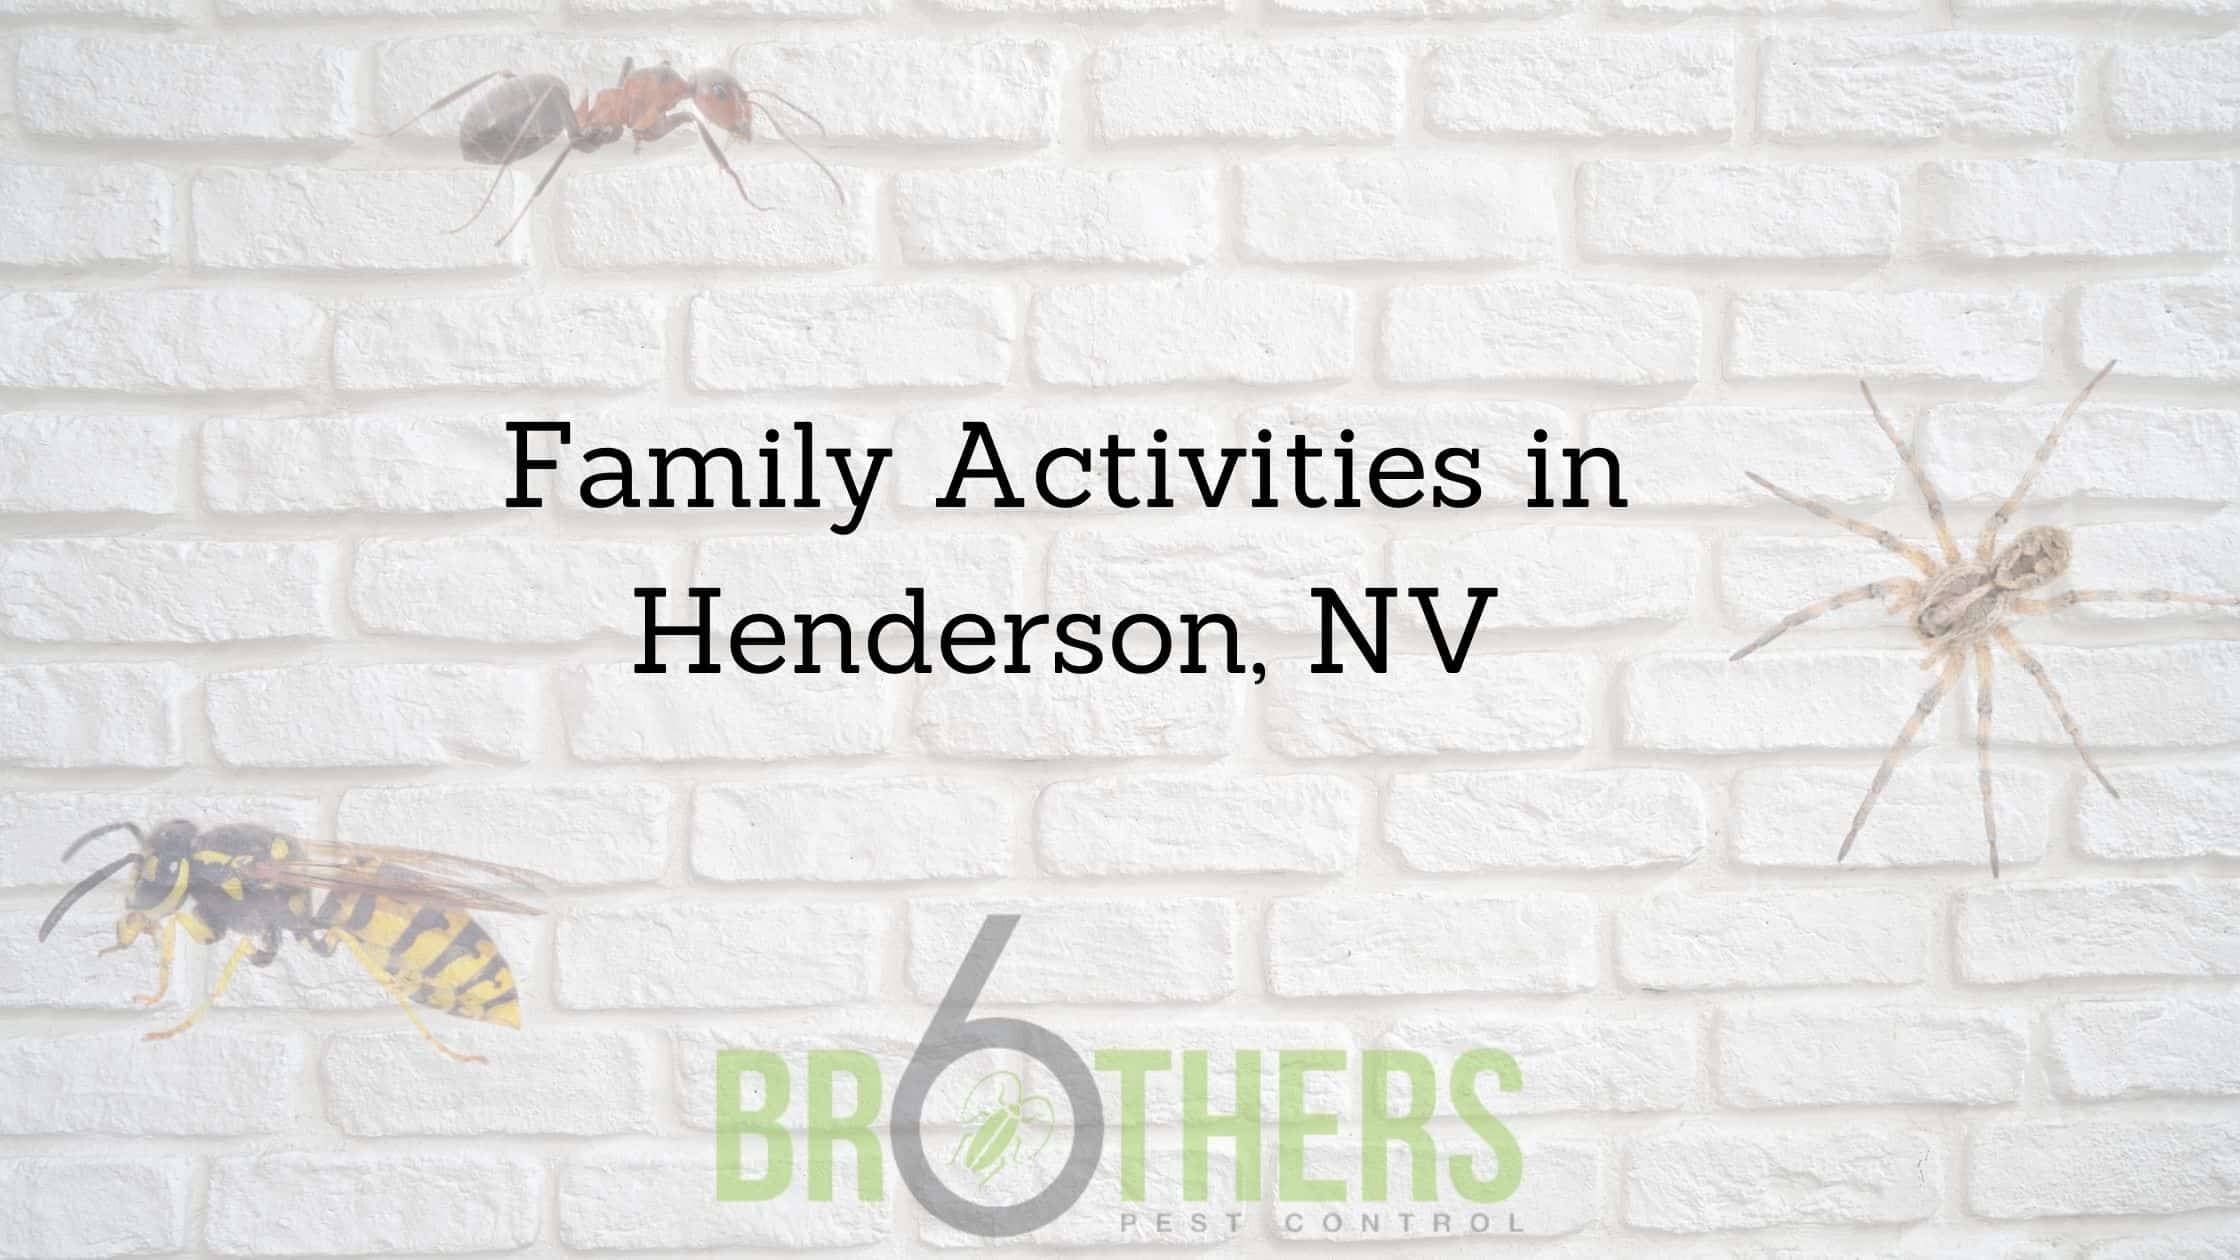 Family Activities in Henderson, NV